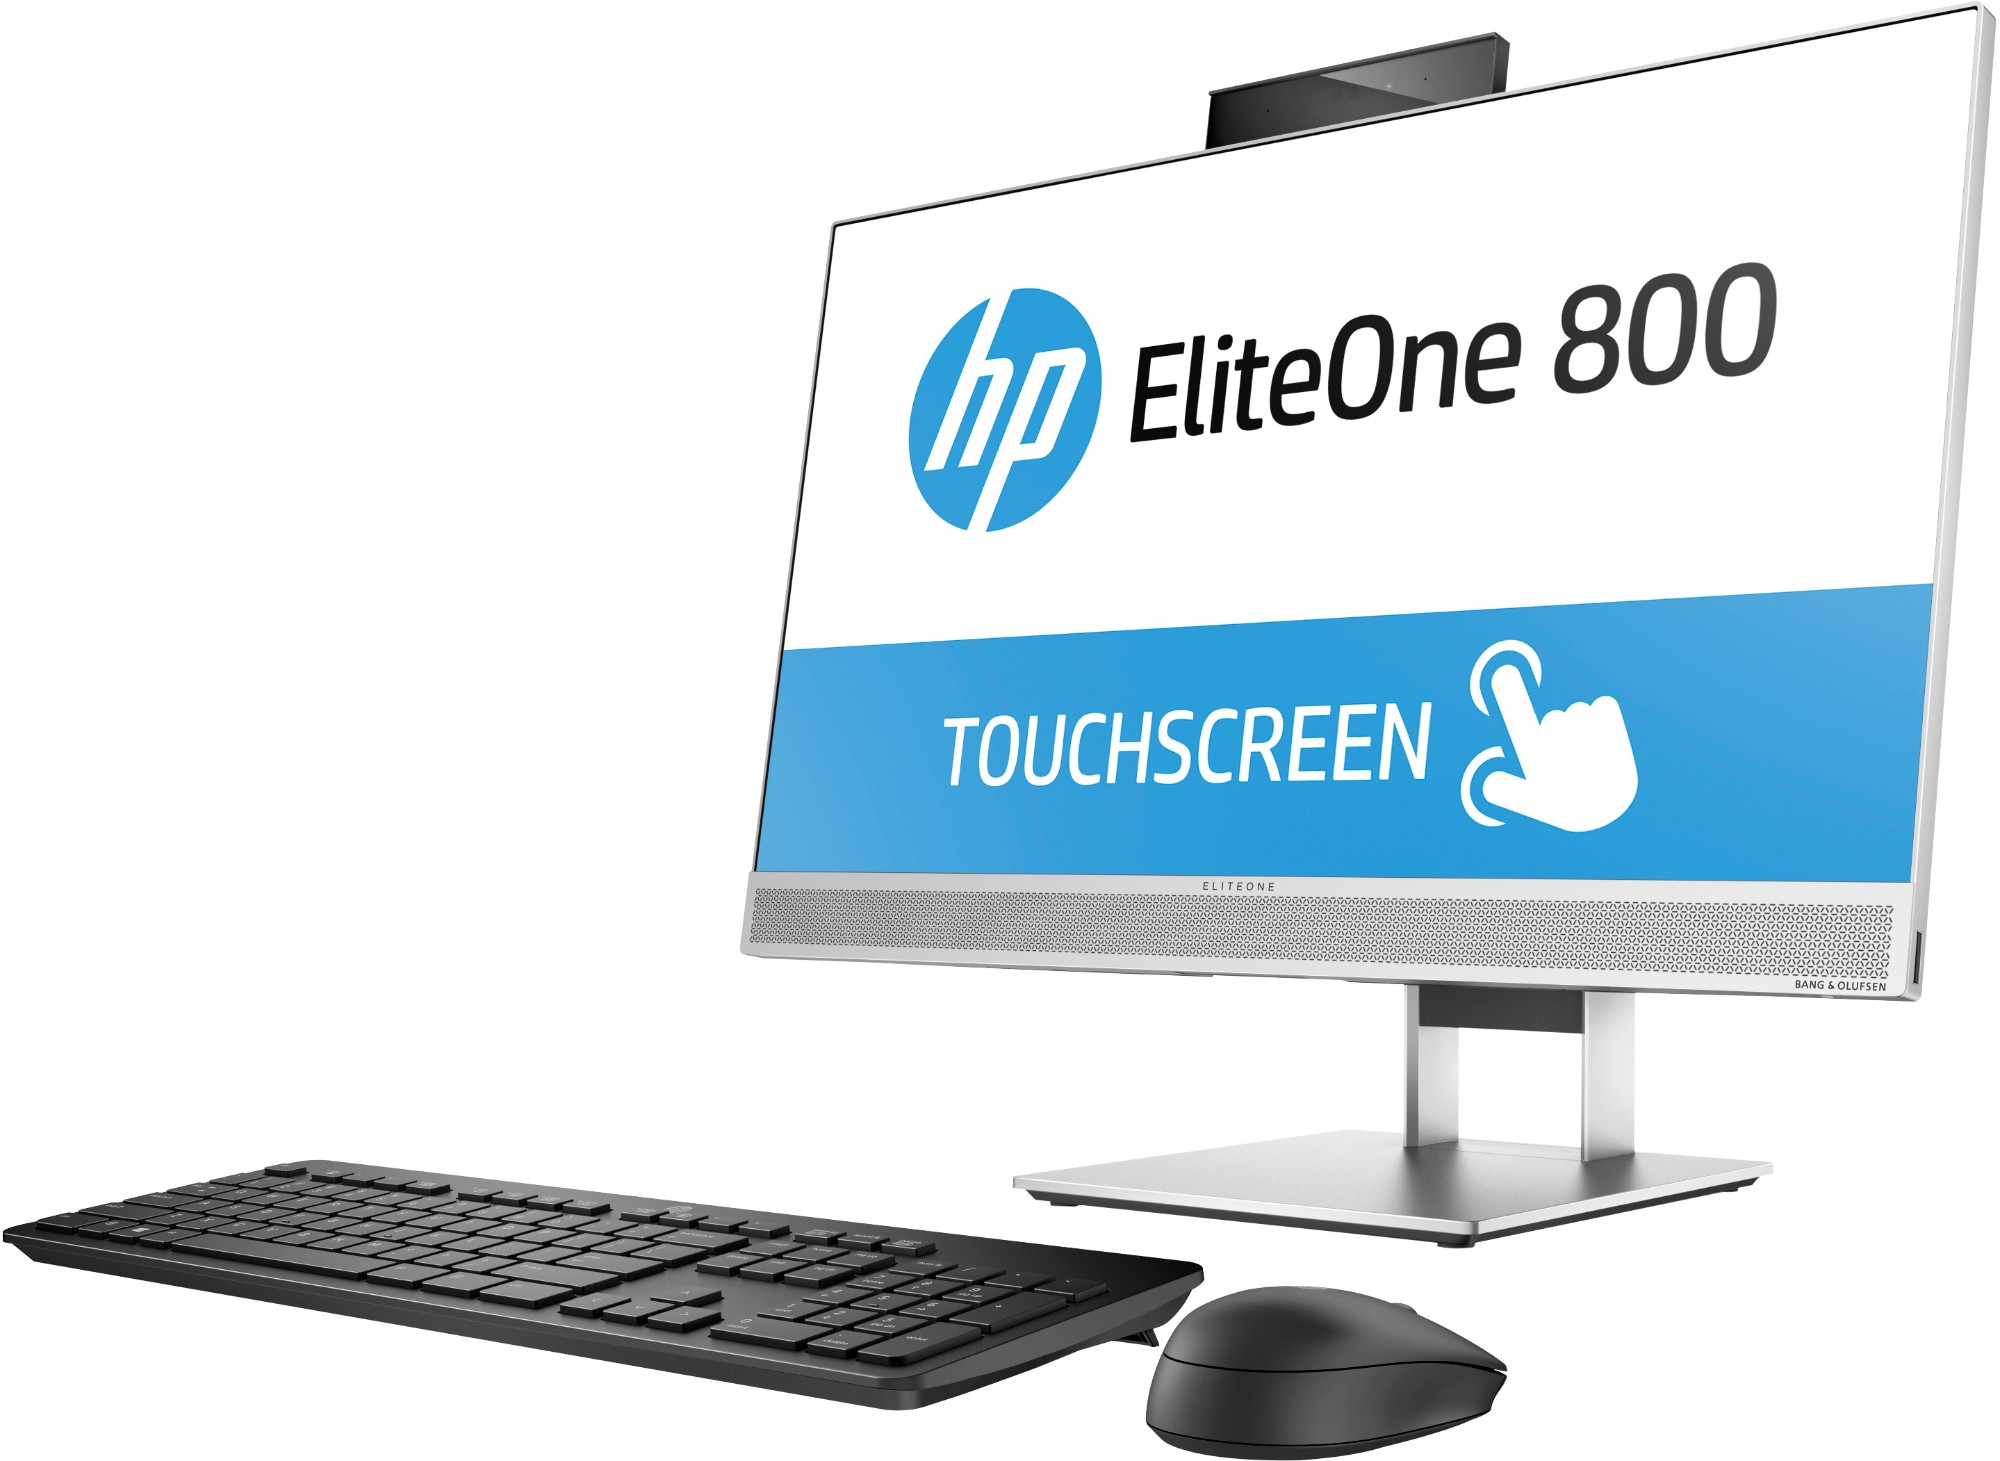 hp eliteone 800 g1 touch aio manual